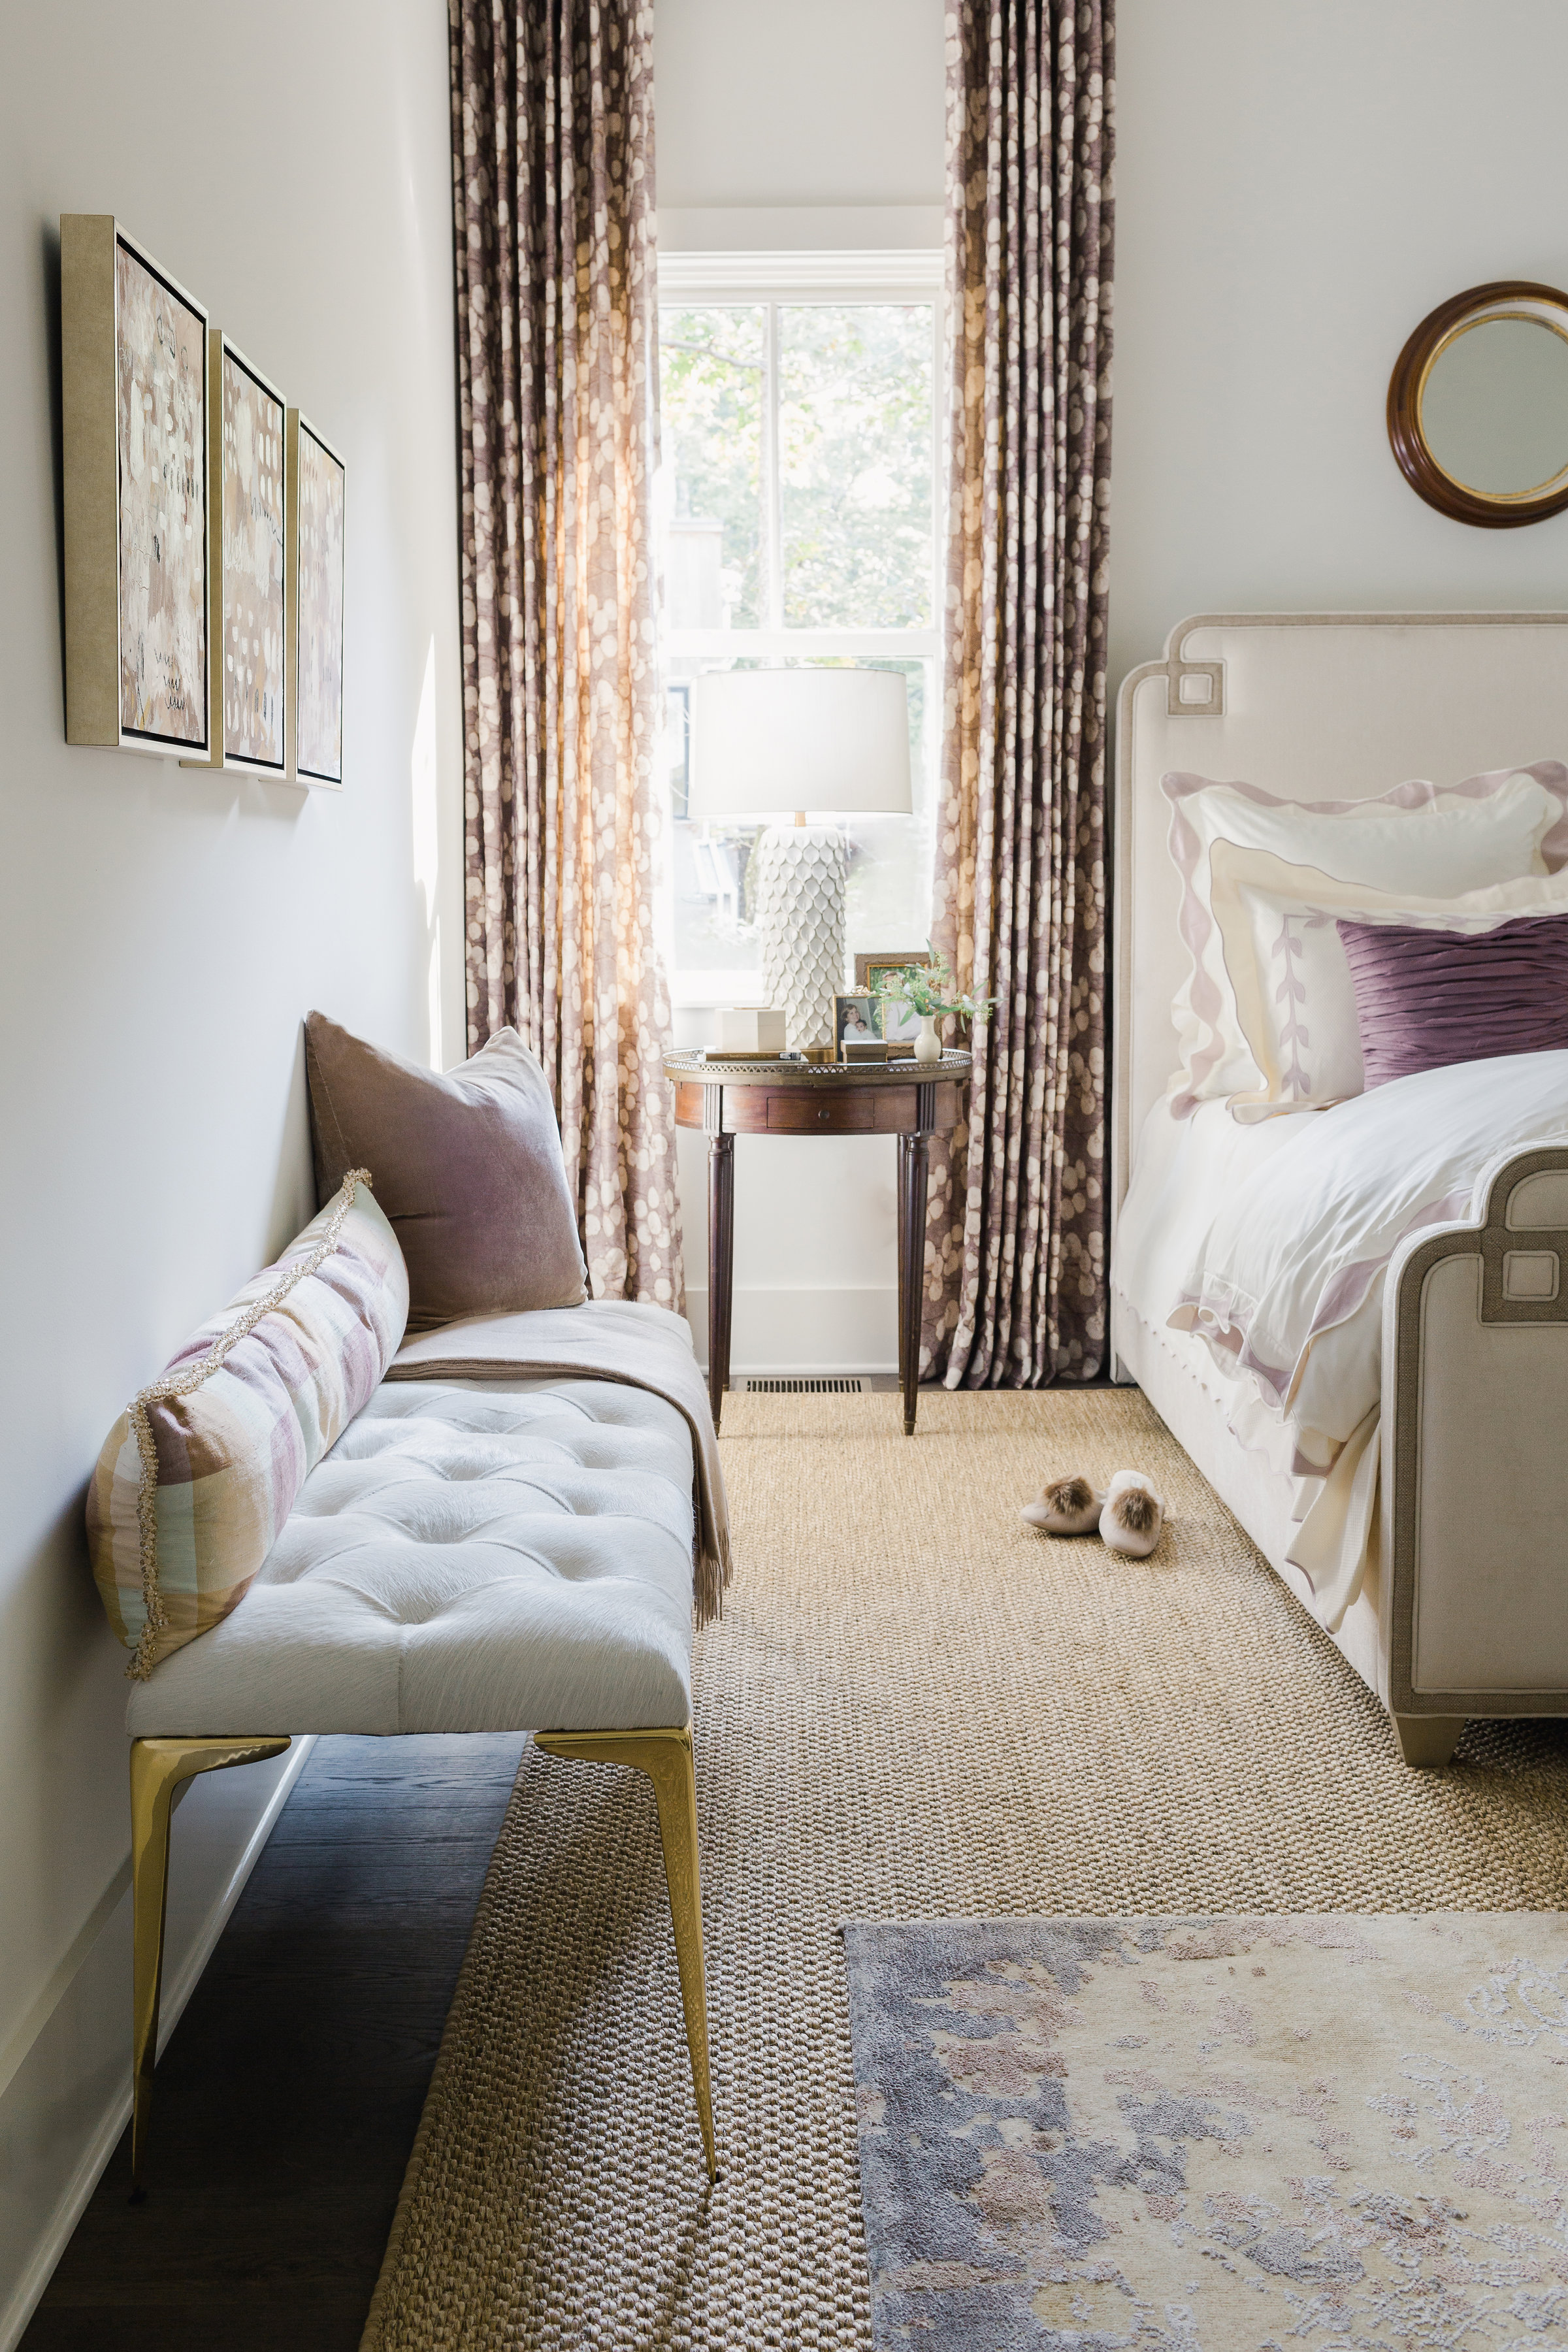 2018 Showhouse Master Bedroom & Bath by Gretchen Edwards, Gilstrap Edwards Interior Design.  Photo by    Ali Harper Photography   .